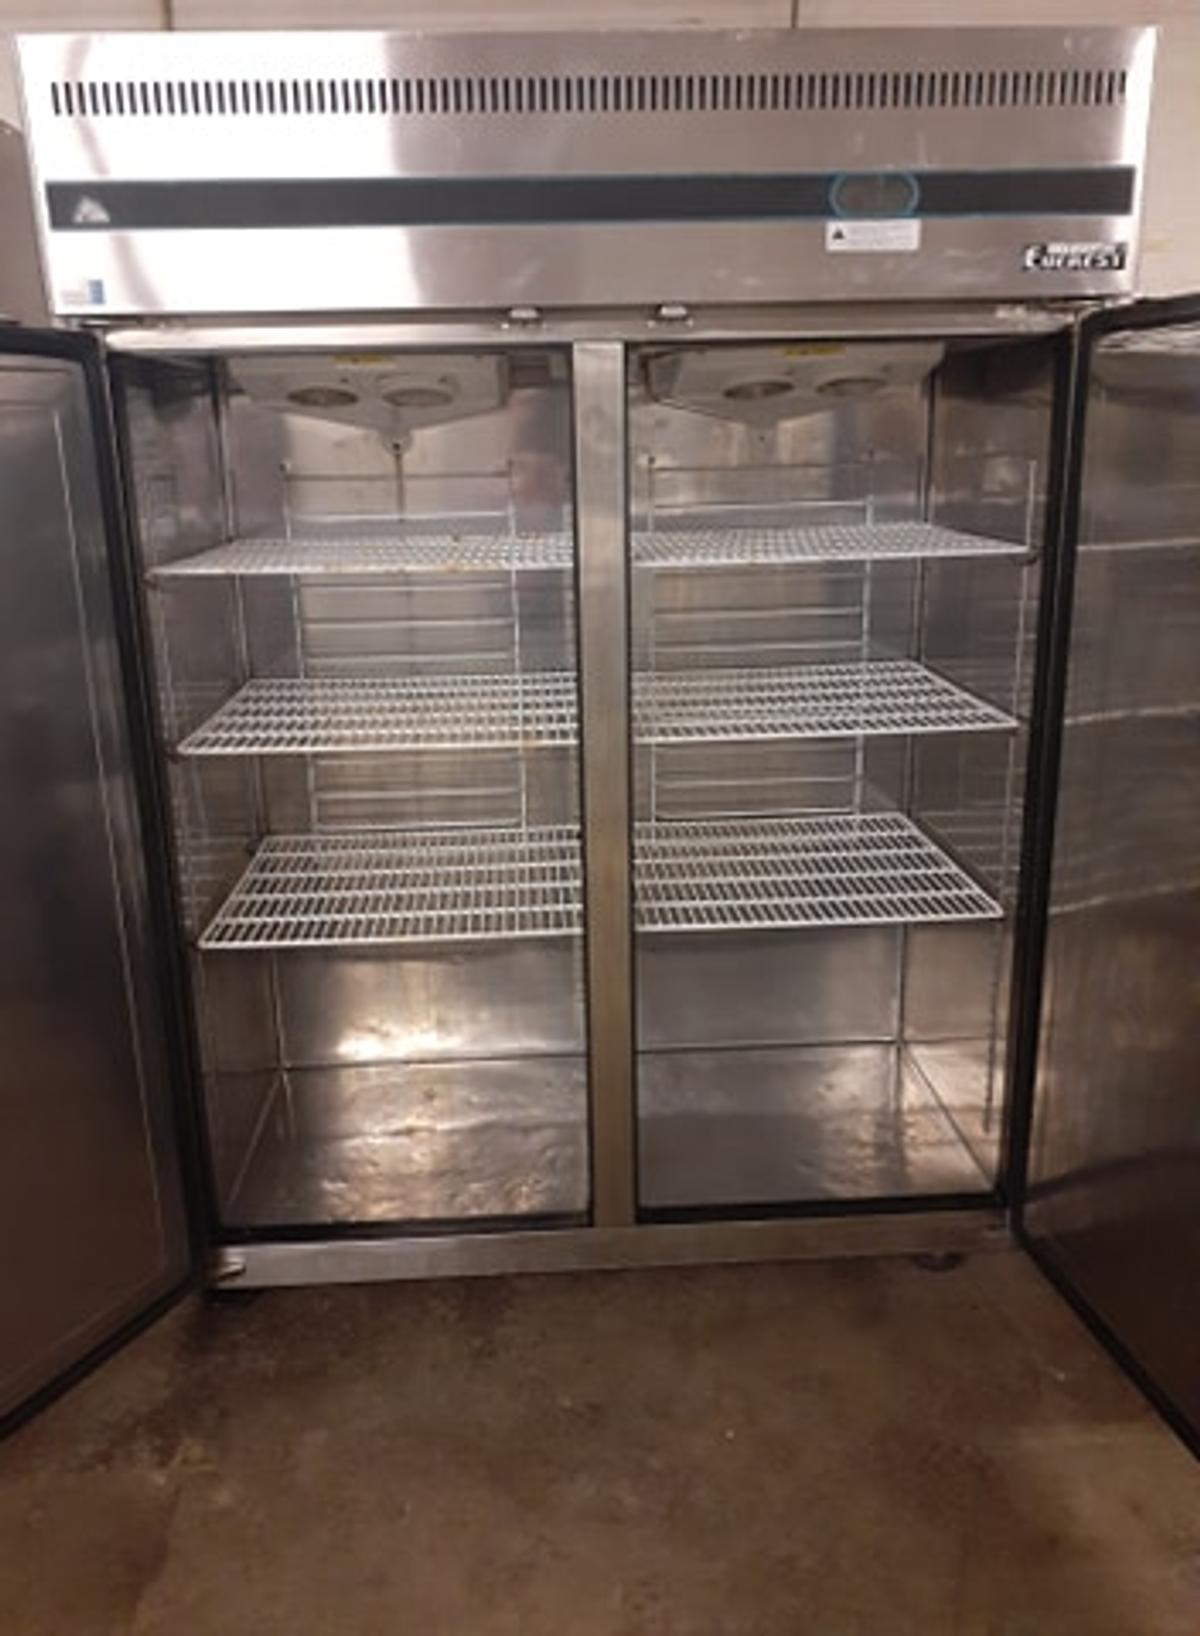 5 pc. commercial restaurant equipment. Includes an Everest one door cooler, an Everest two door freezer, two large Luxus coffee urns and a True prep table with two door cooler underneath. All stainless steel, cash only.